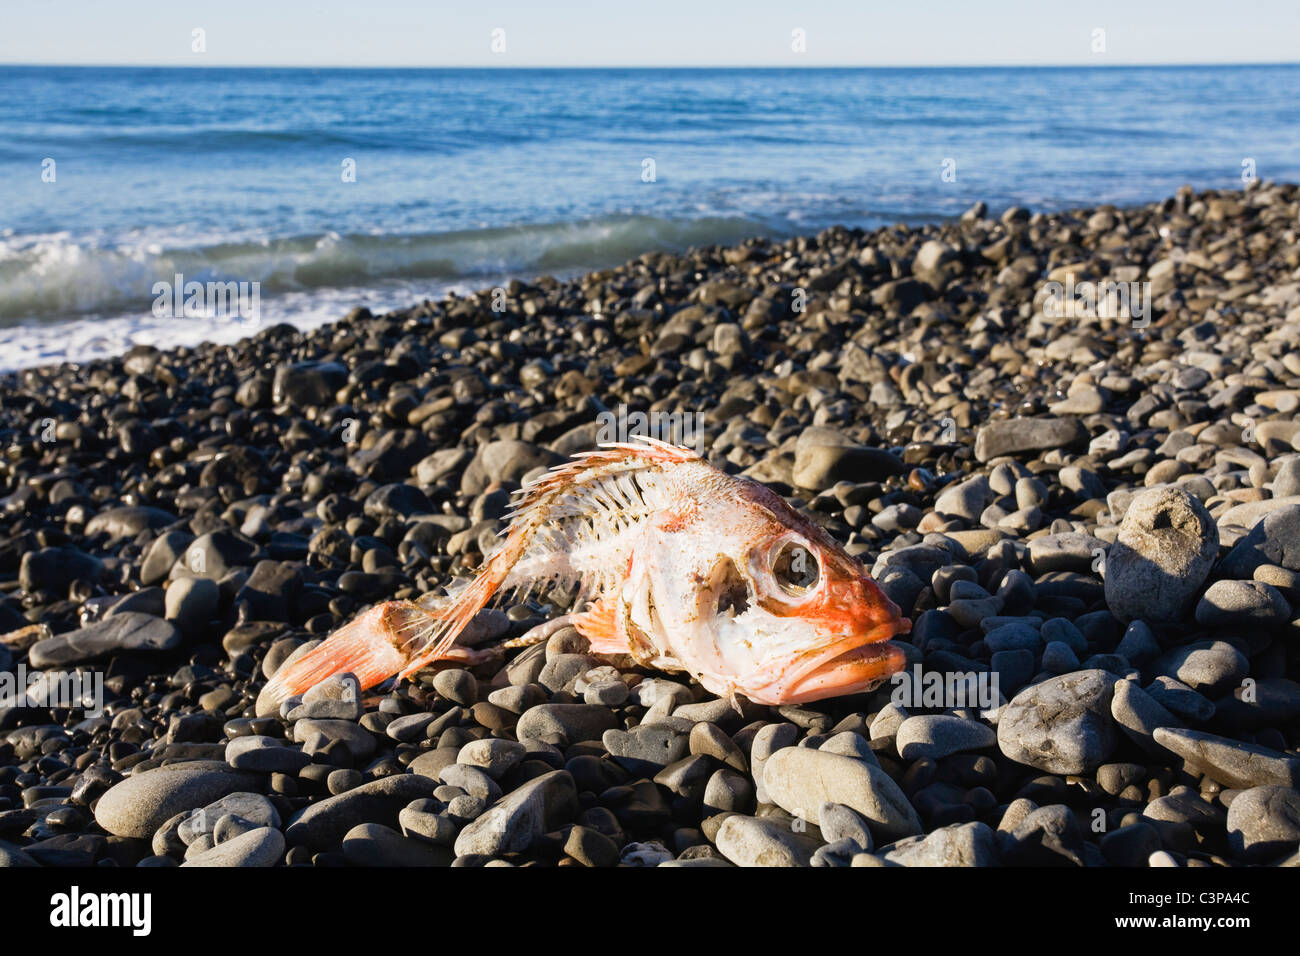 New Zealand, Dead fish on the beach - Stock Image